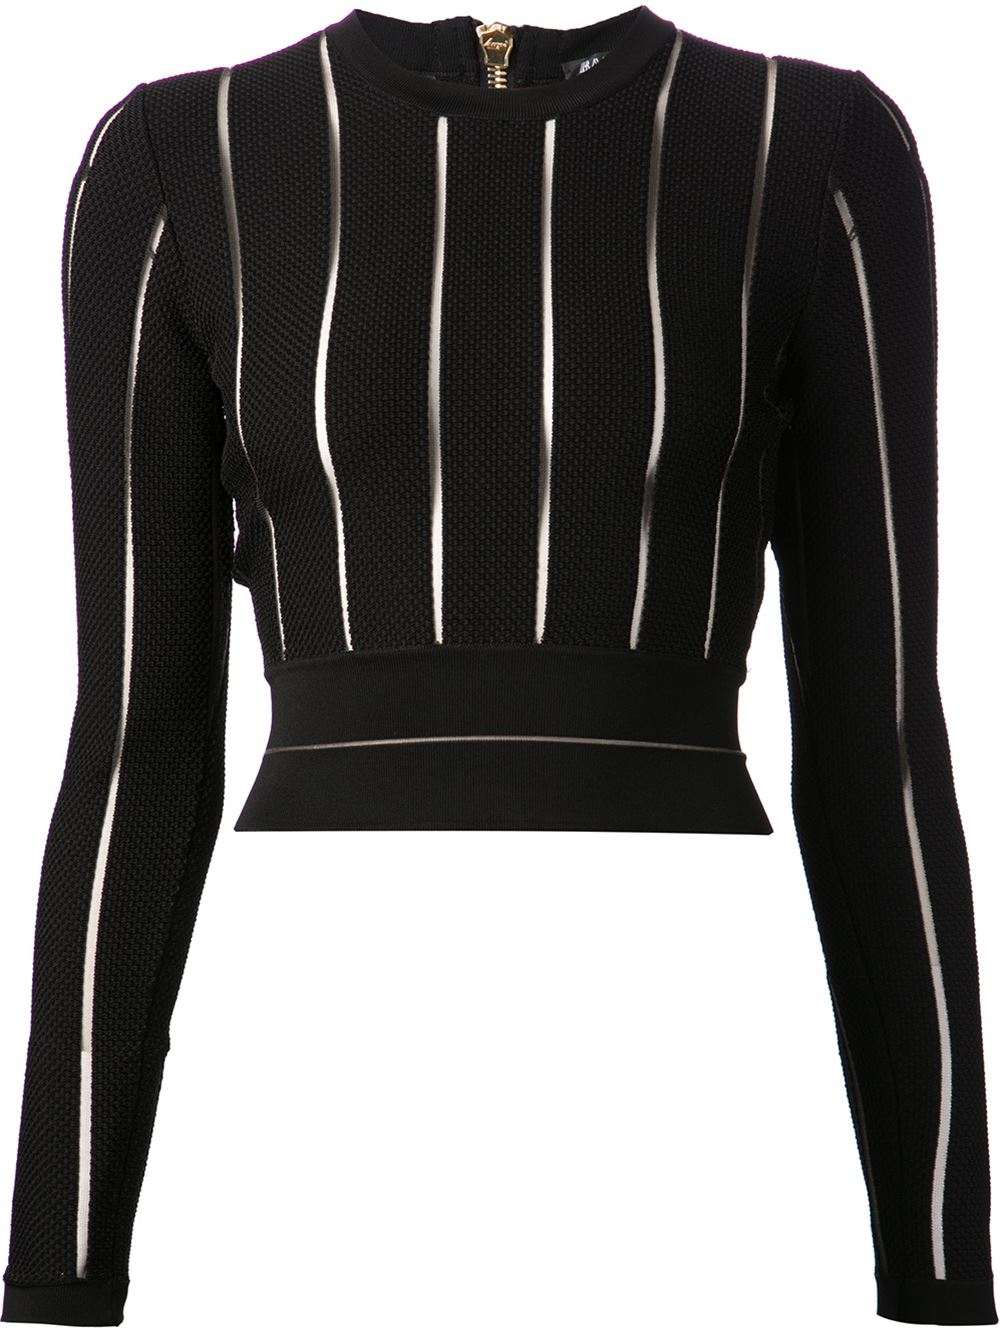 9d6cade18e Balmain Fitted Crop Top - Patron Of The New - Farfetch.com